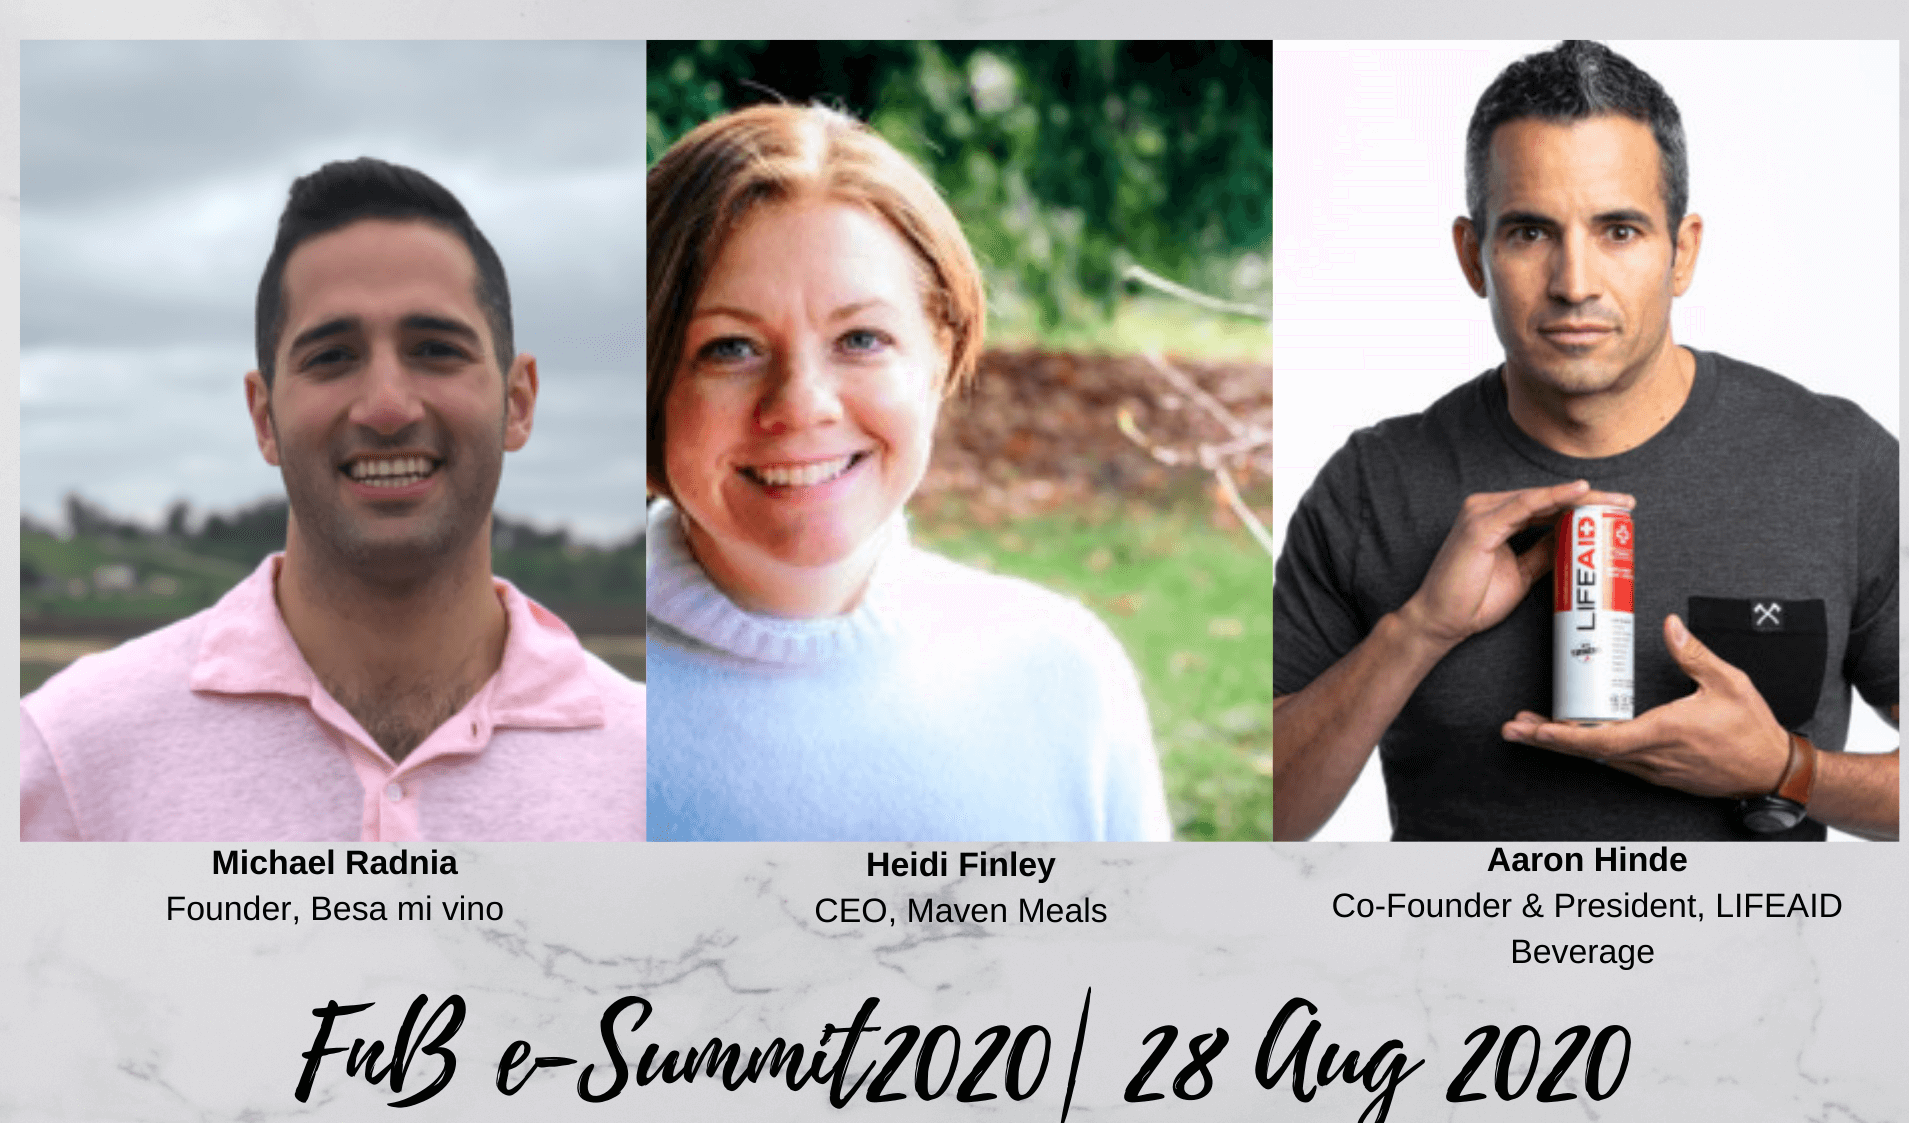 Day 5 – Session 2: F&B e-Summit 2020 (Aug 28th, 2020)